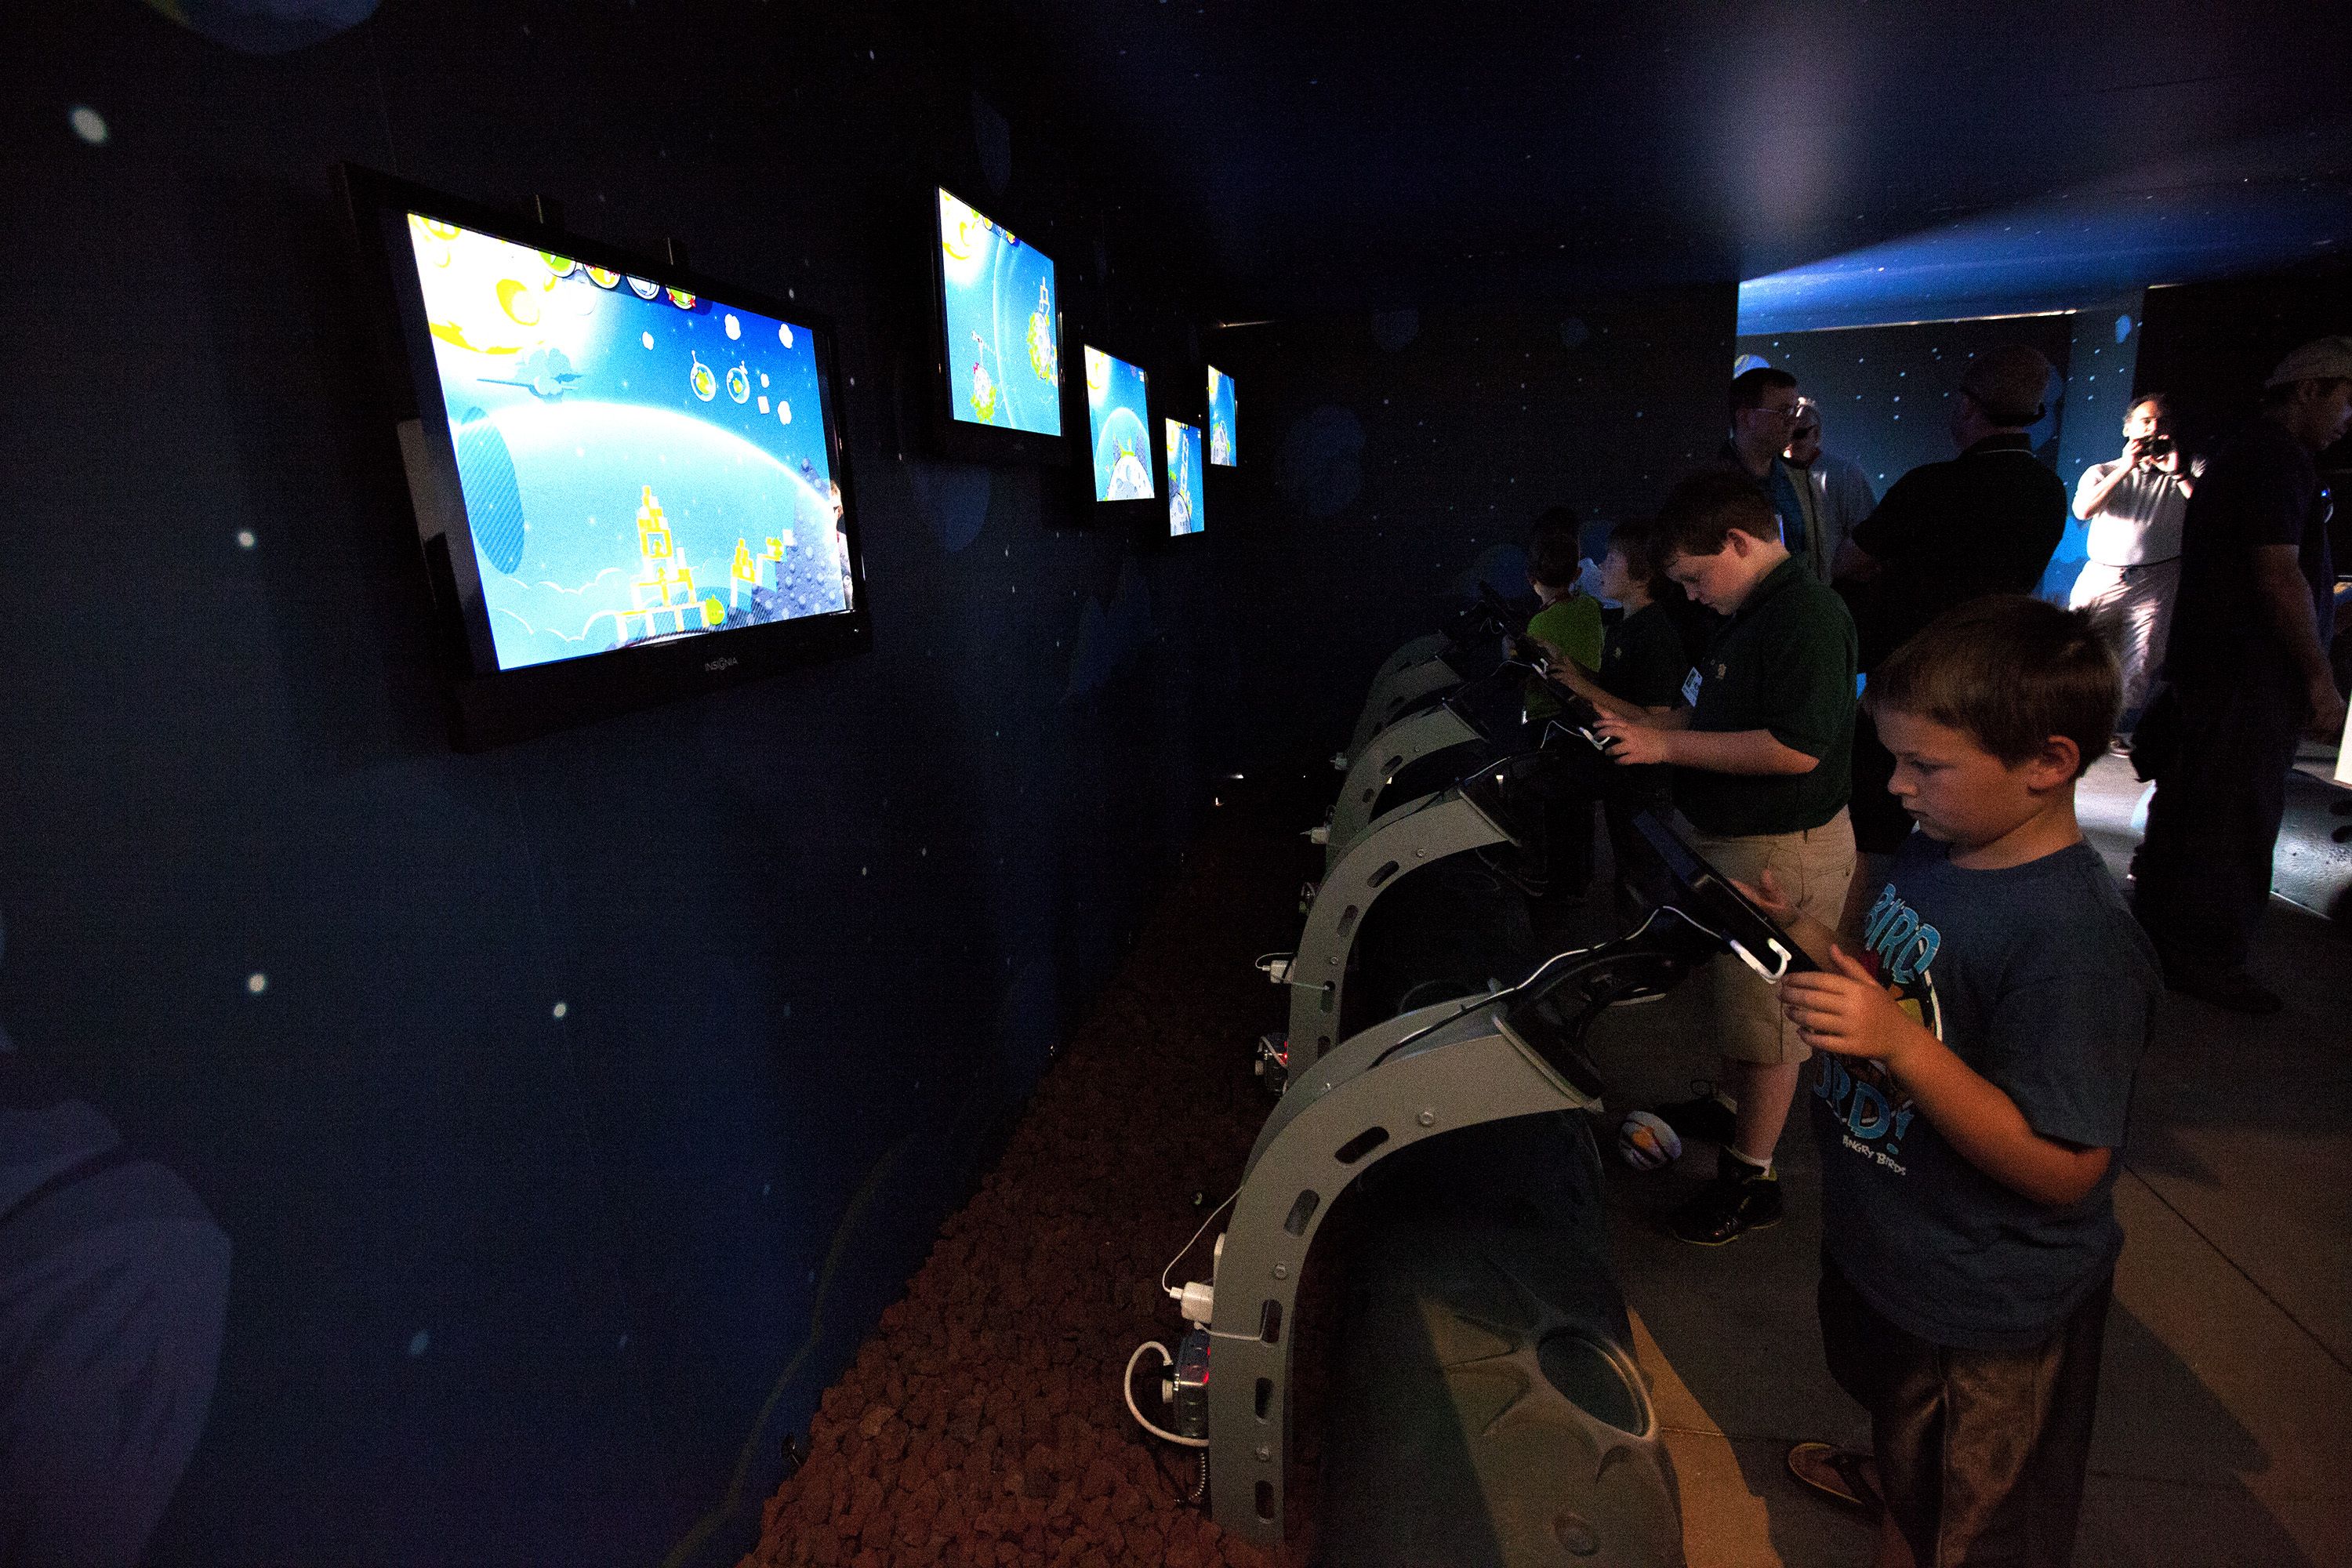 Children Try Angry Birds Space Encounter at Exhibit